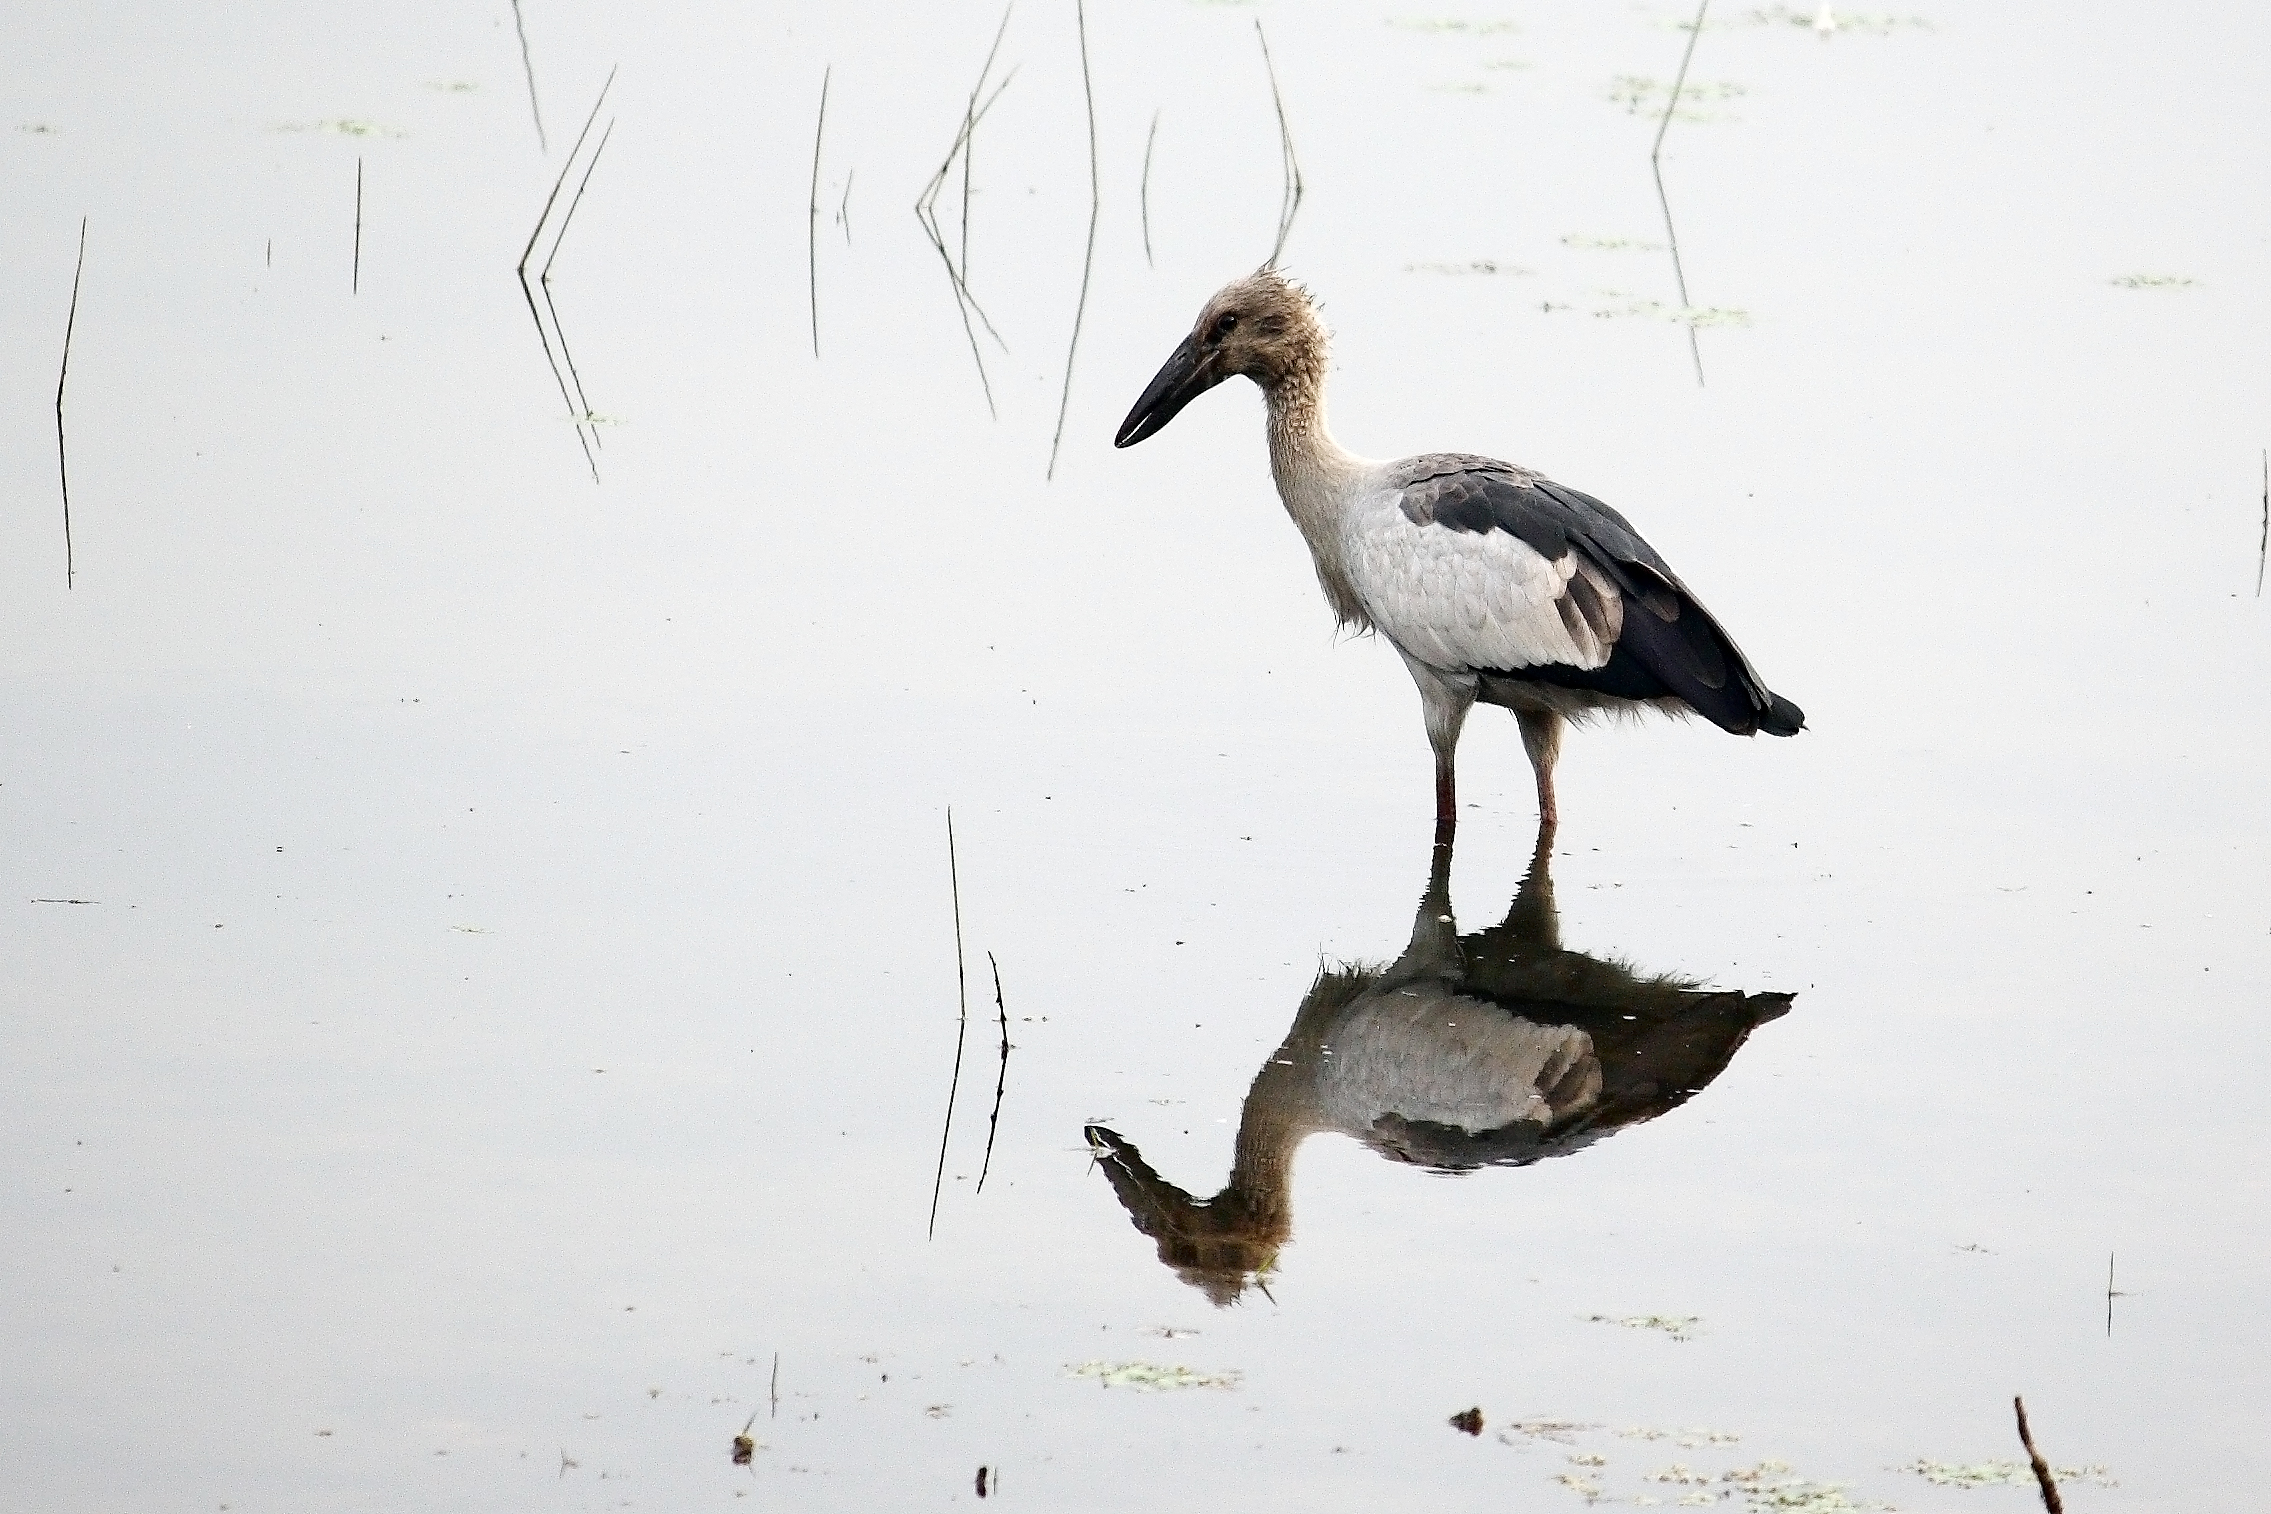 Asian open-bill stork in the Pond